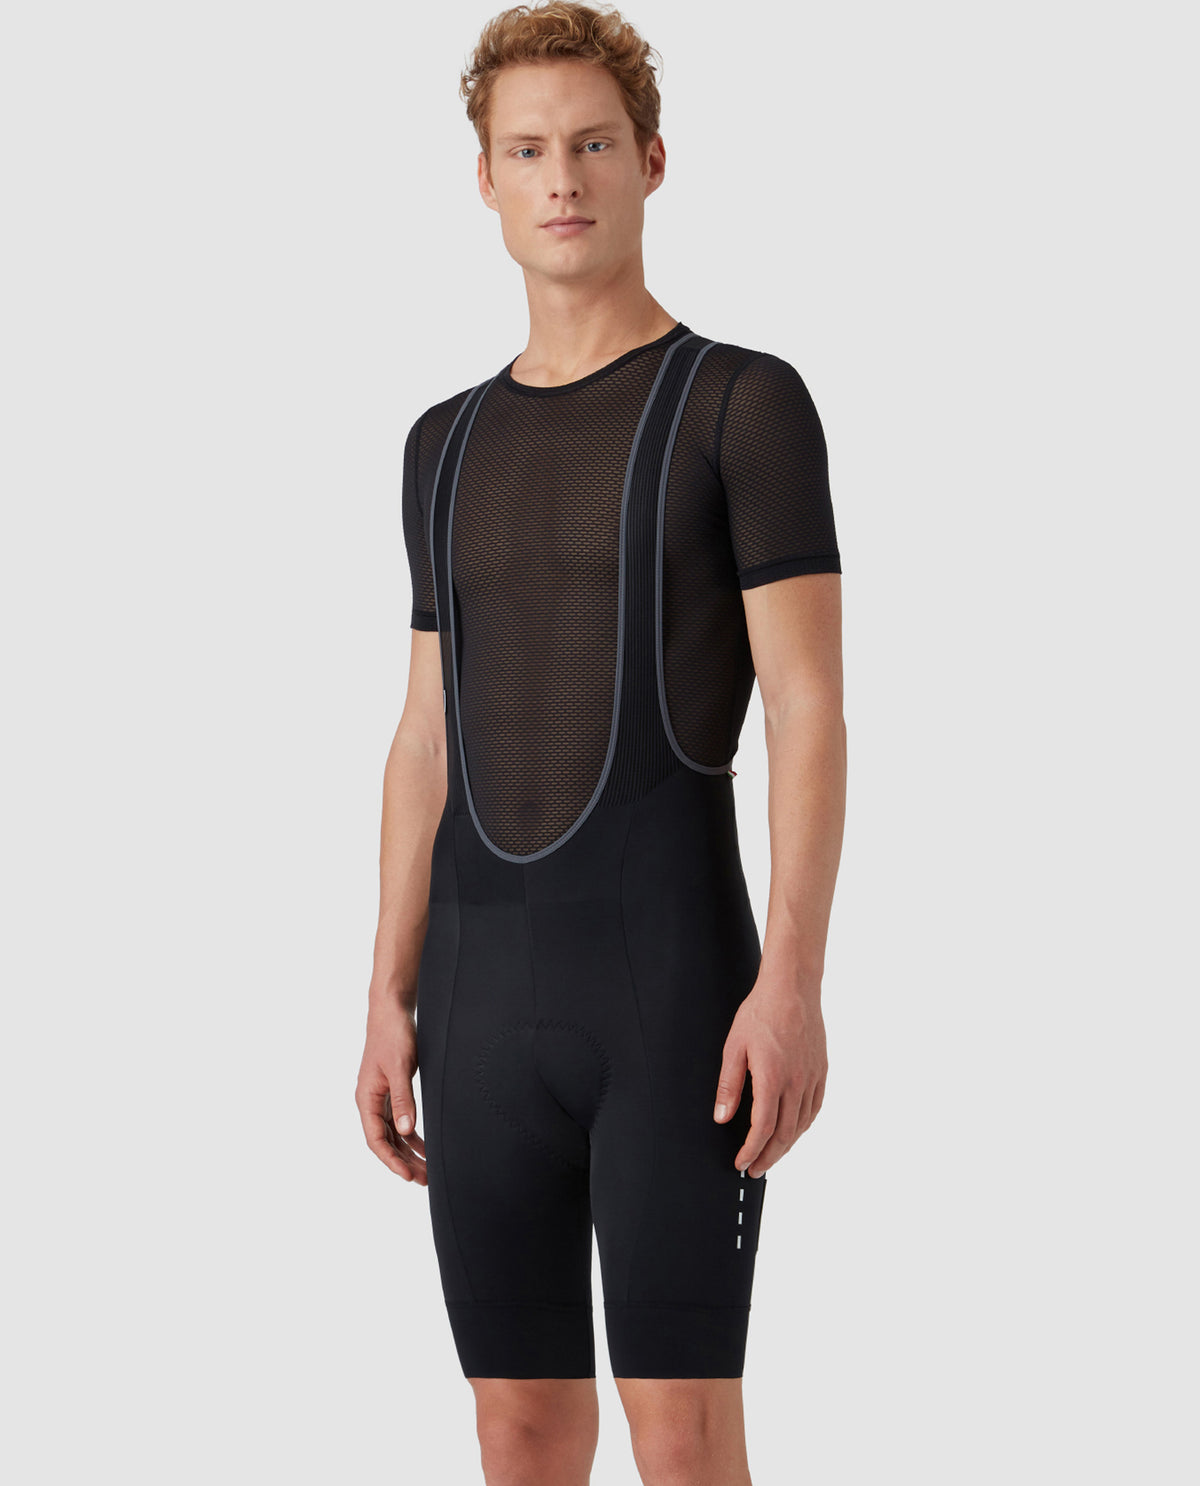 Club Bib Shorts Black